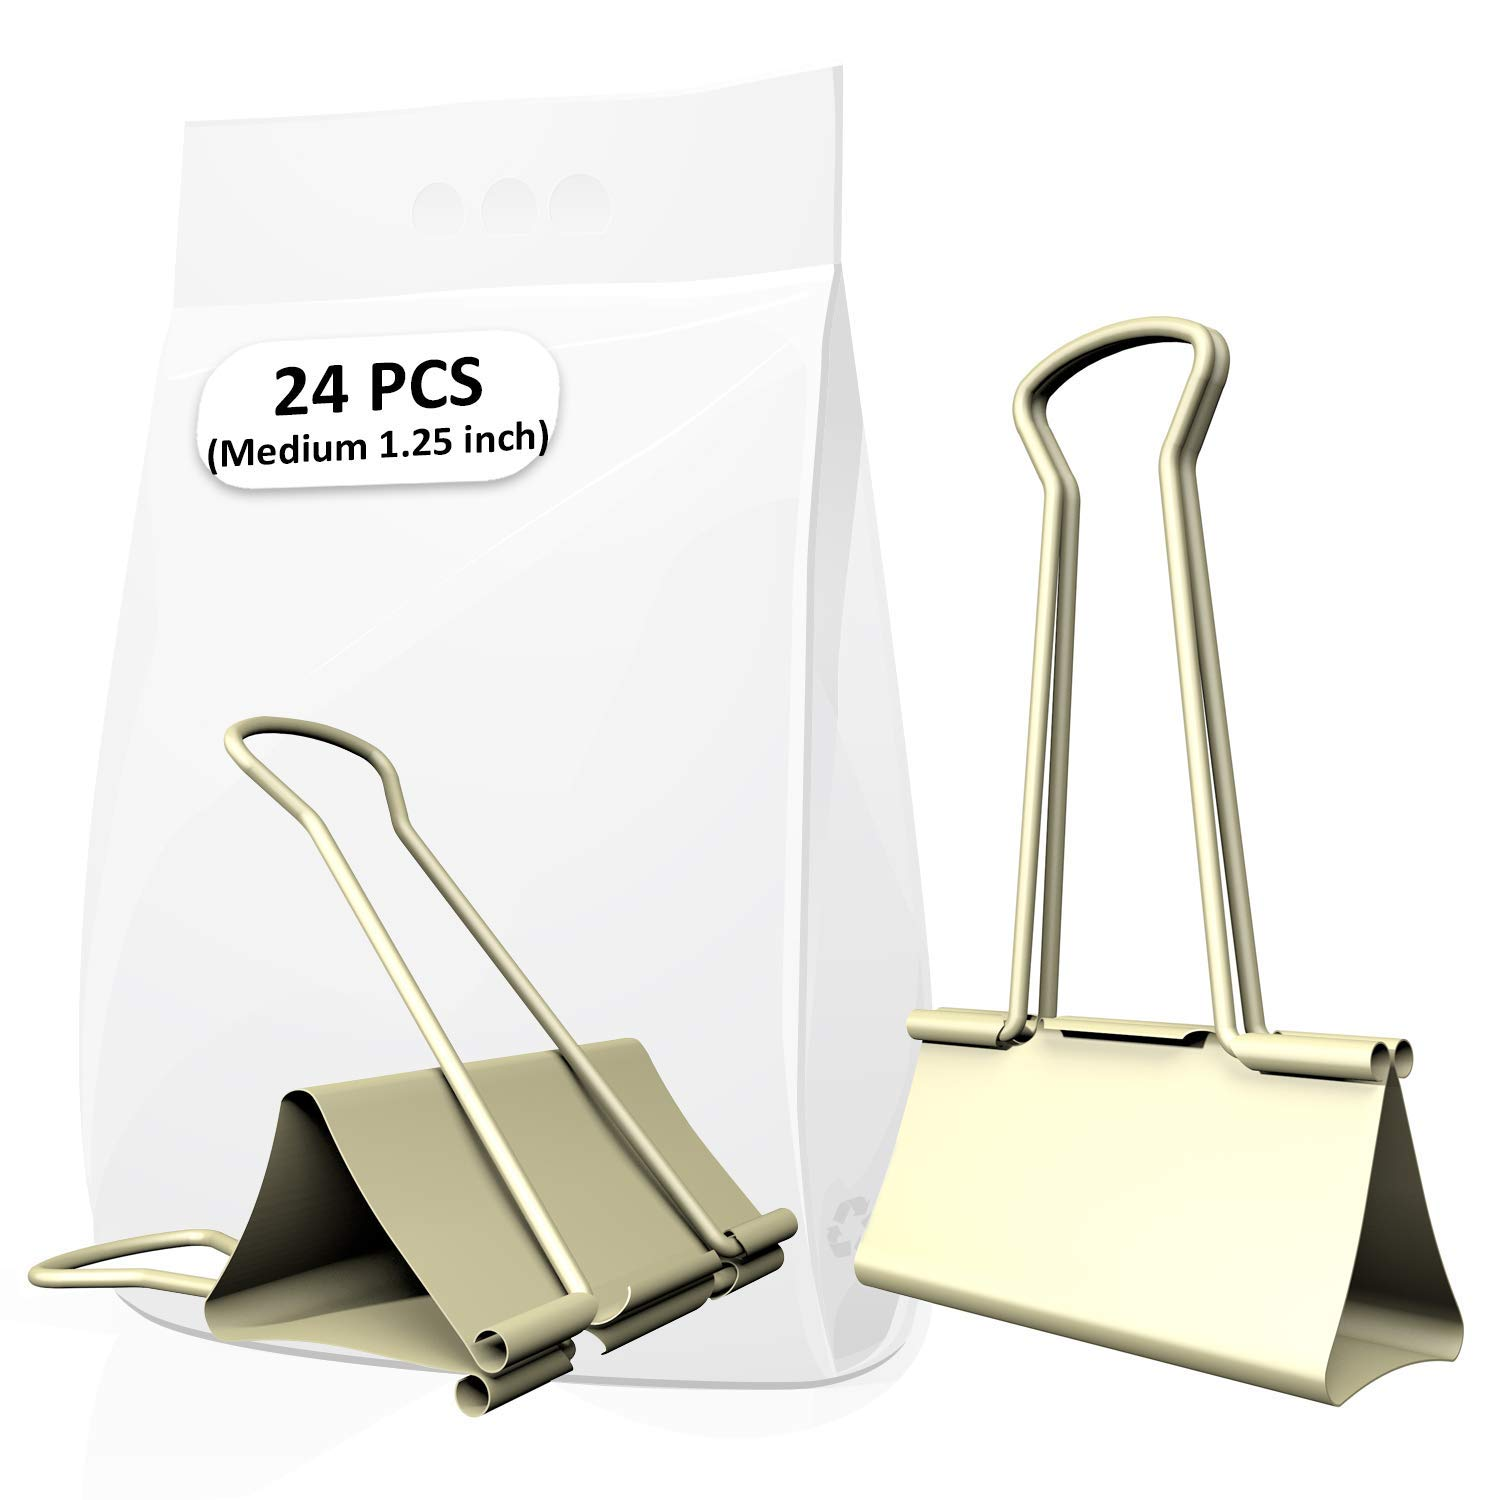 Gold Medium Metal Binder Clips of 1-1/4 inch, Colored Paper clamp, Assorted Sizes Assortment, for Office School Fold Back Clip, etc. 0.75/1.25/2 in (1.25 inch / 32 mm (Gold), 24 PCS (Gold))